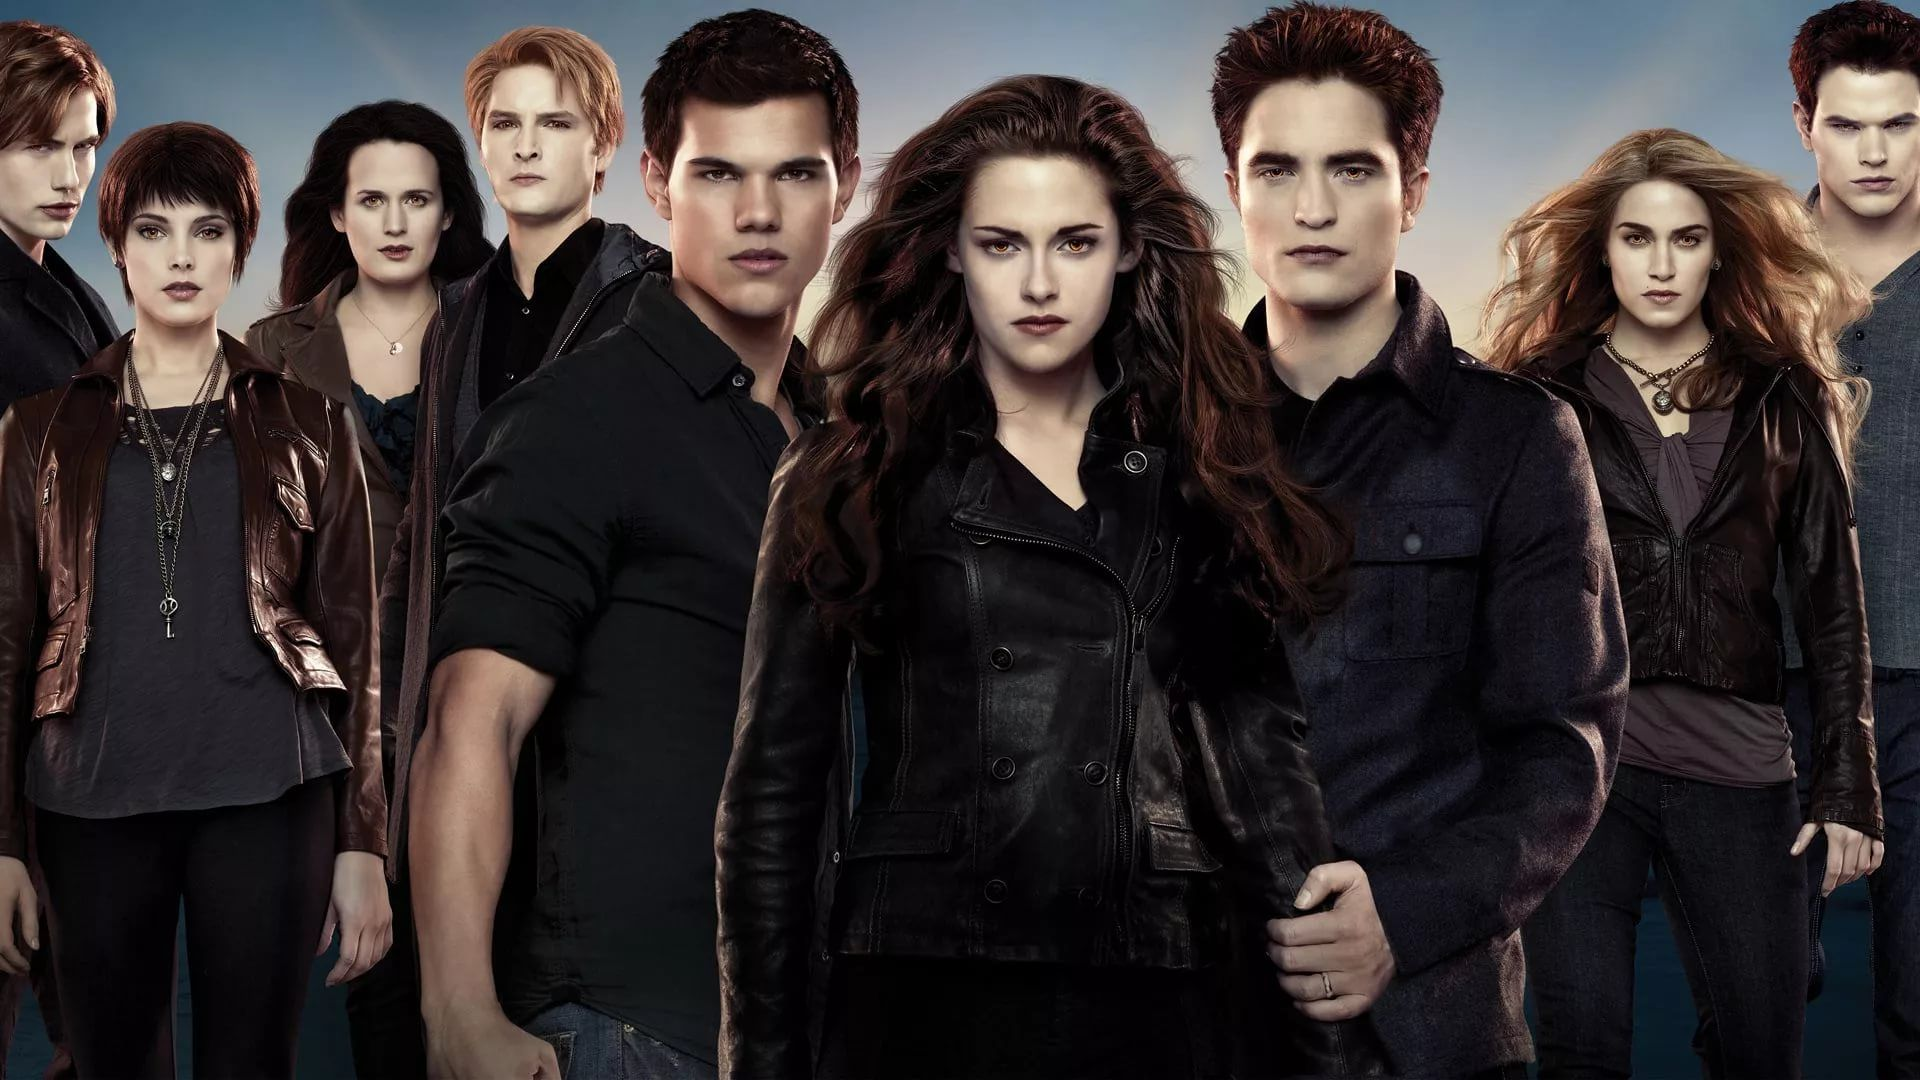 Twilight Saga Free Desktop Wallpaper